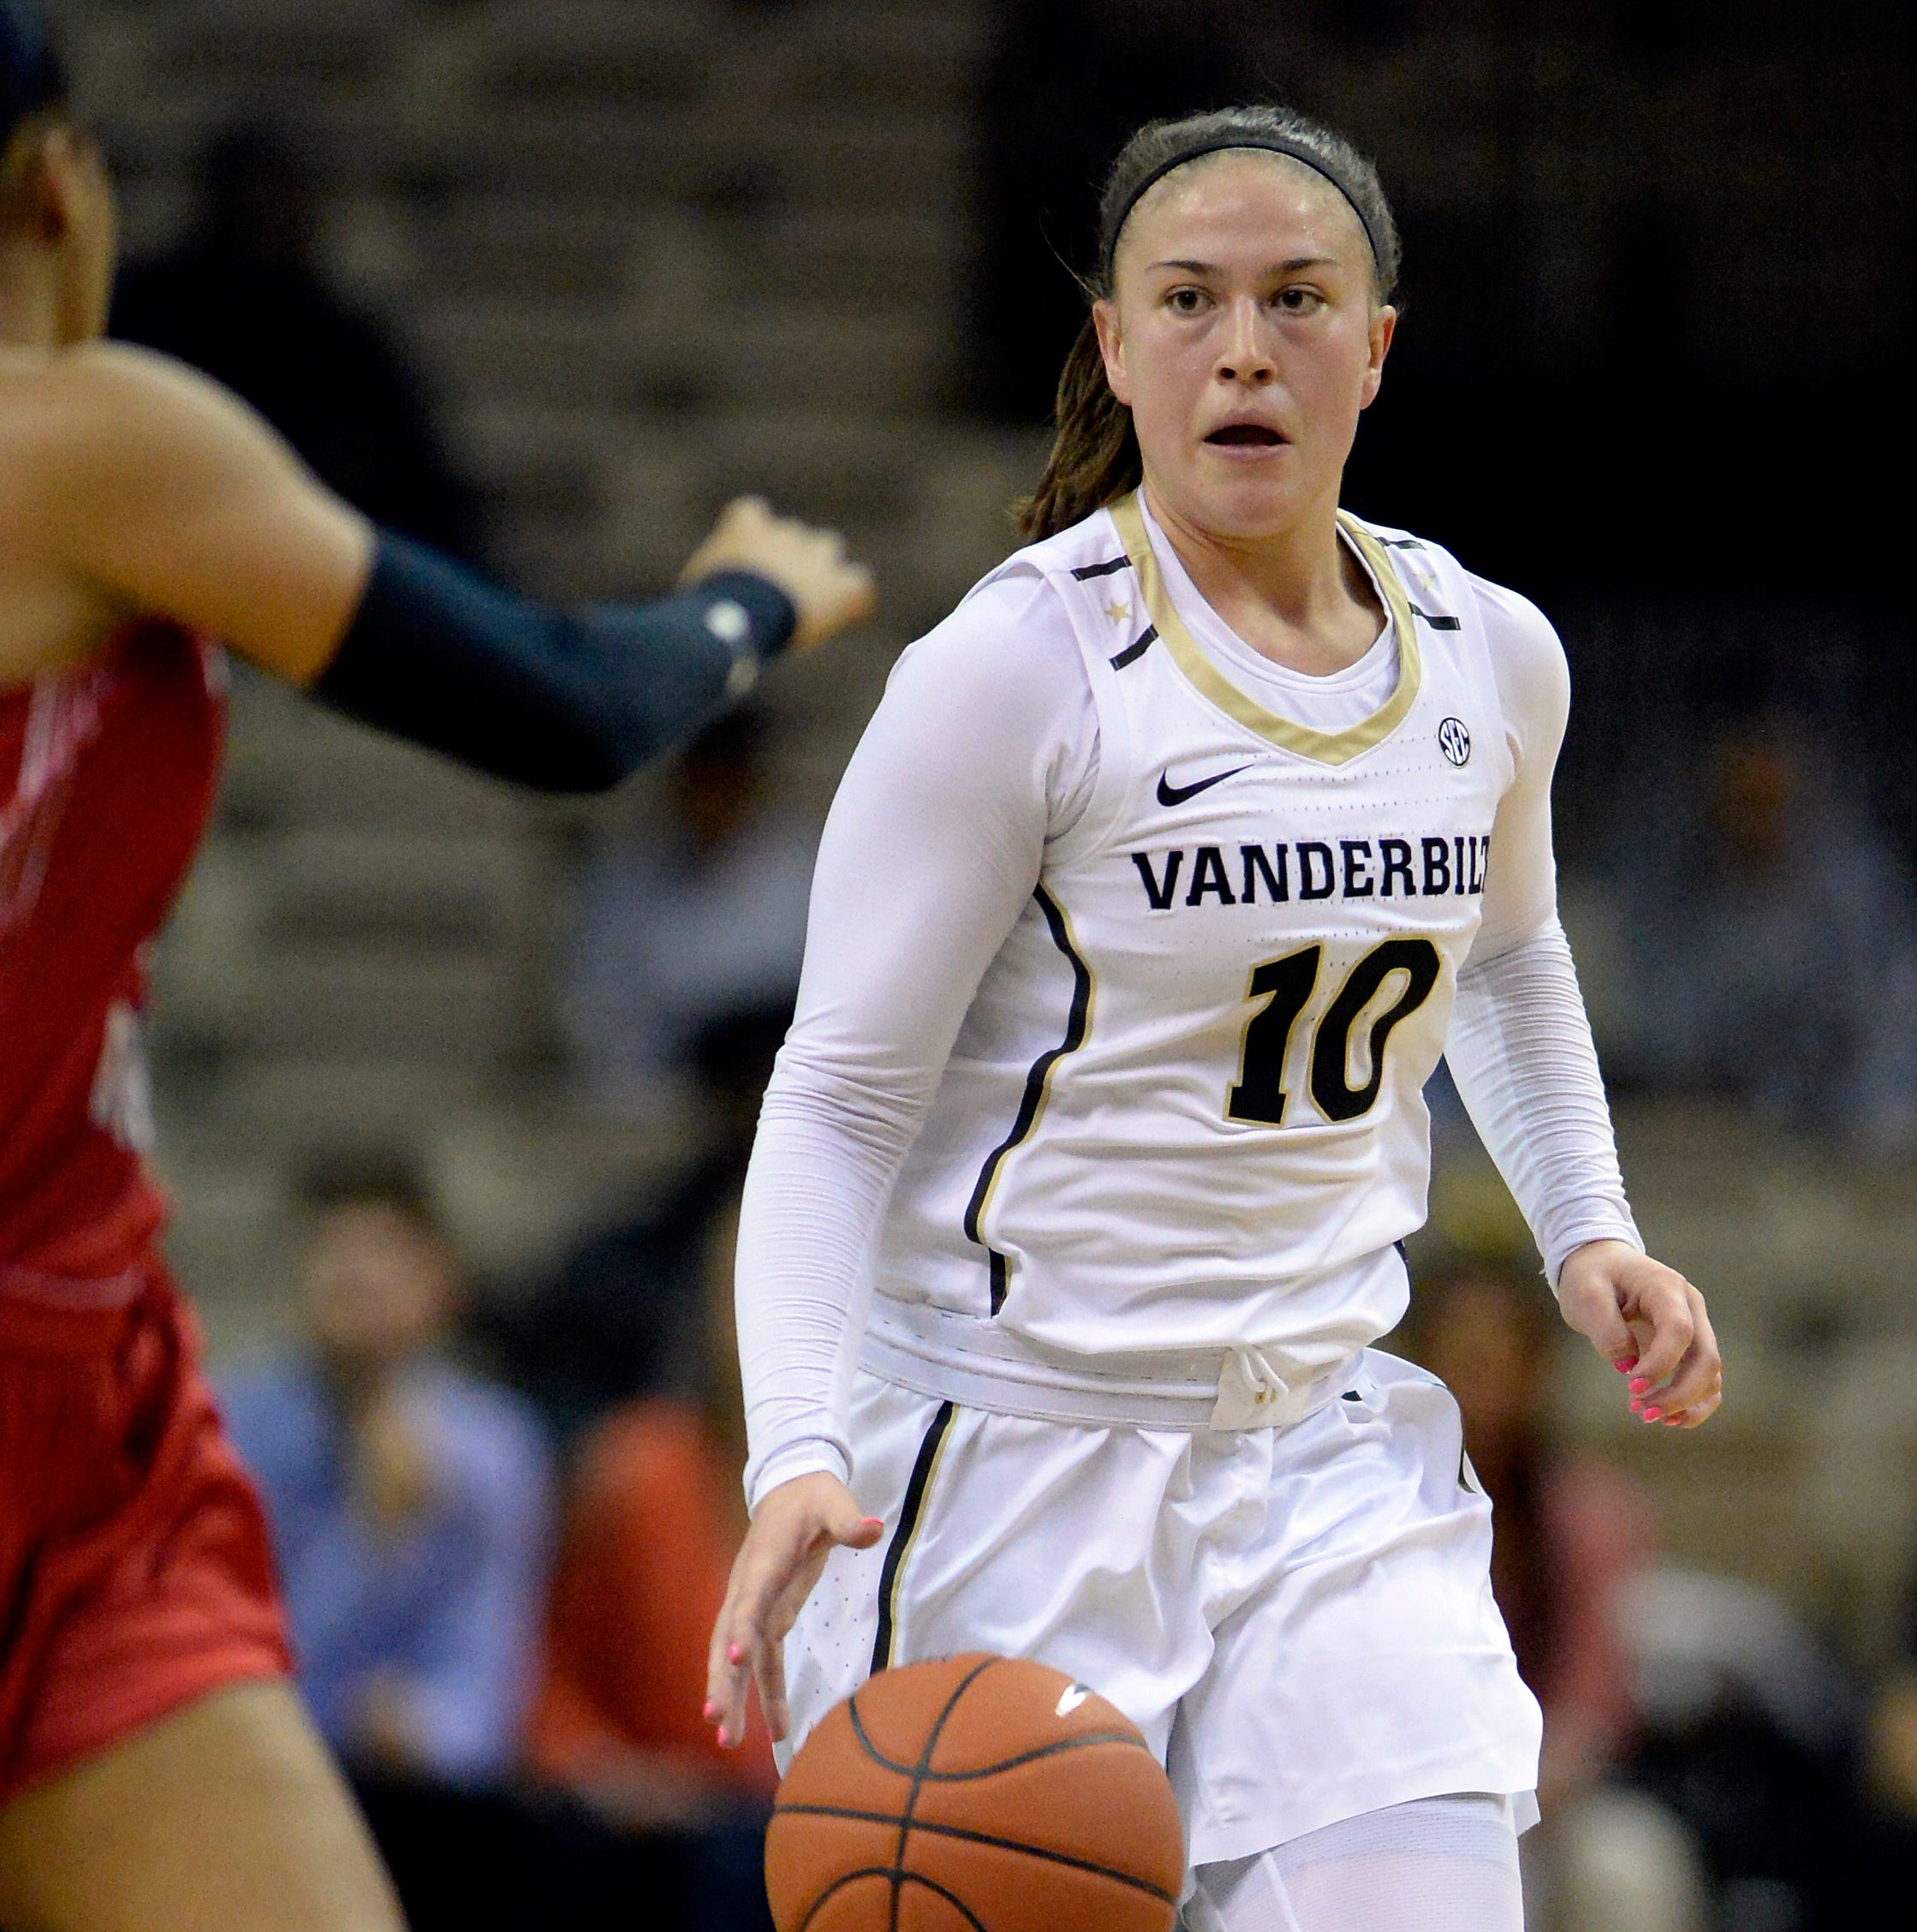 Vanderbilt's Cierra Walker transferring, sixth player in three years to leave